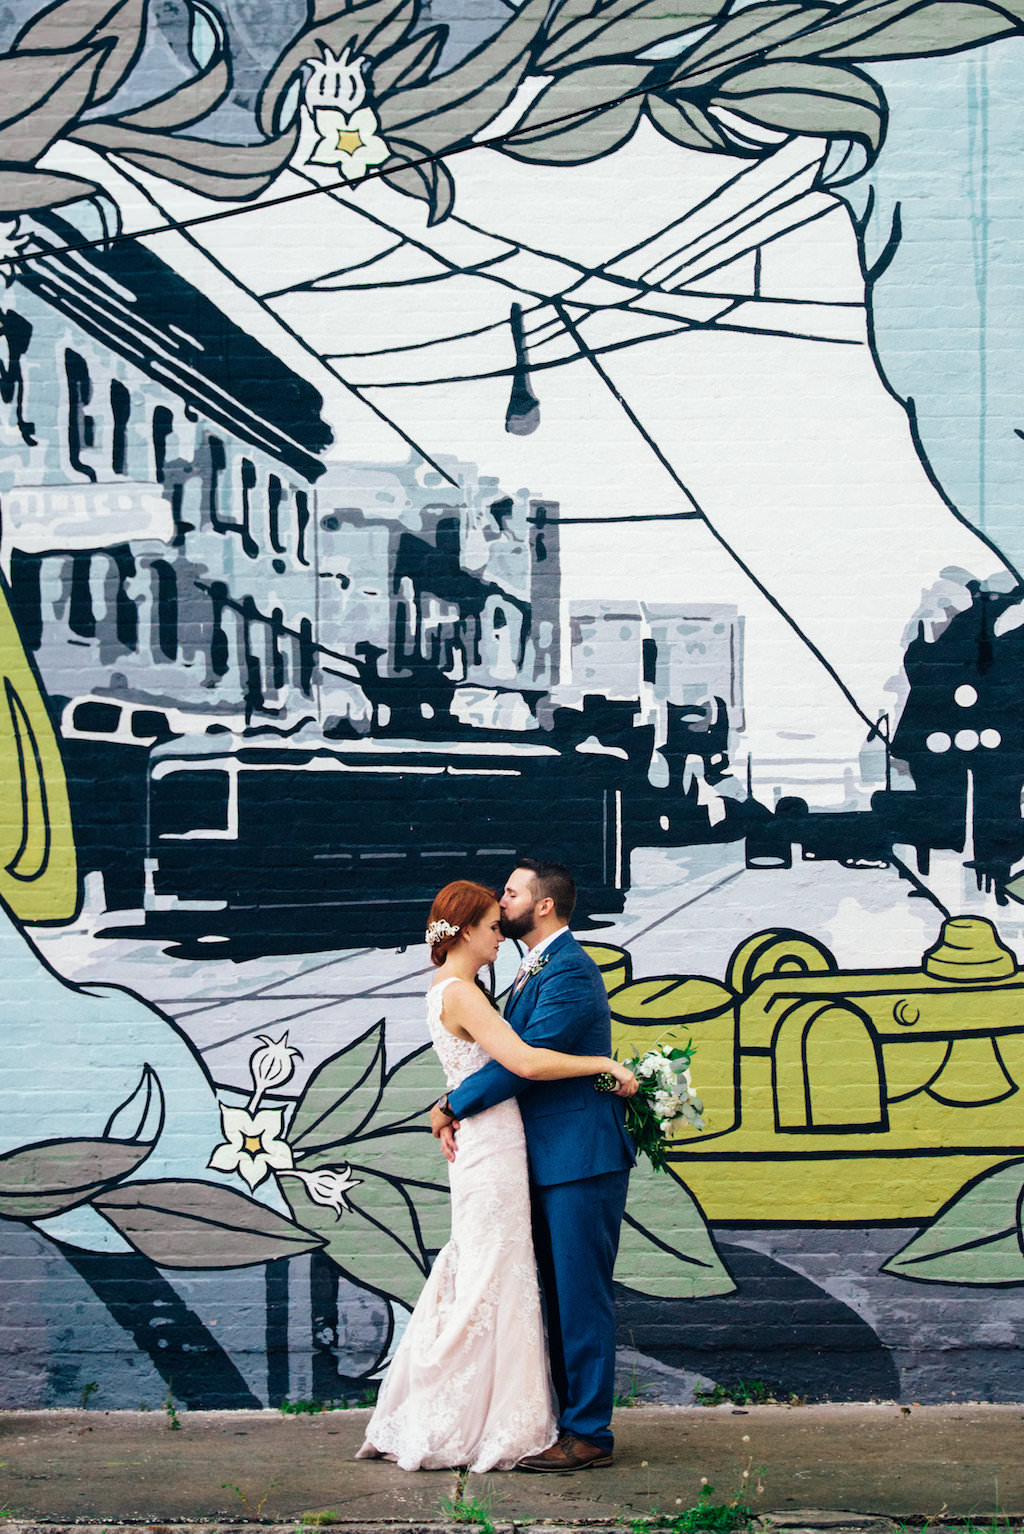 Downtown Tampa Creative Wedding Portrait, Bride in Sweetheart Lace Stella York Dress with White and Greenery Bouquet, Groom in Blue Suit